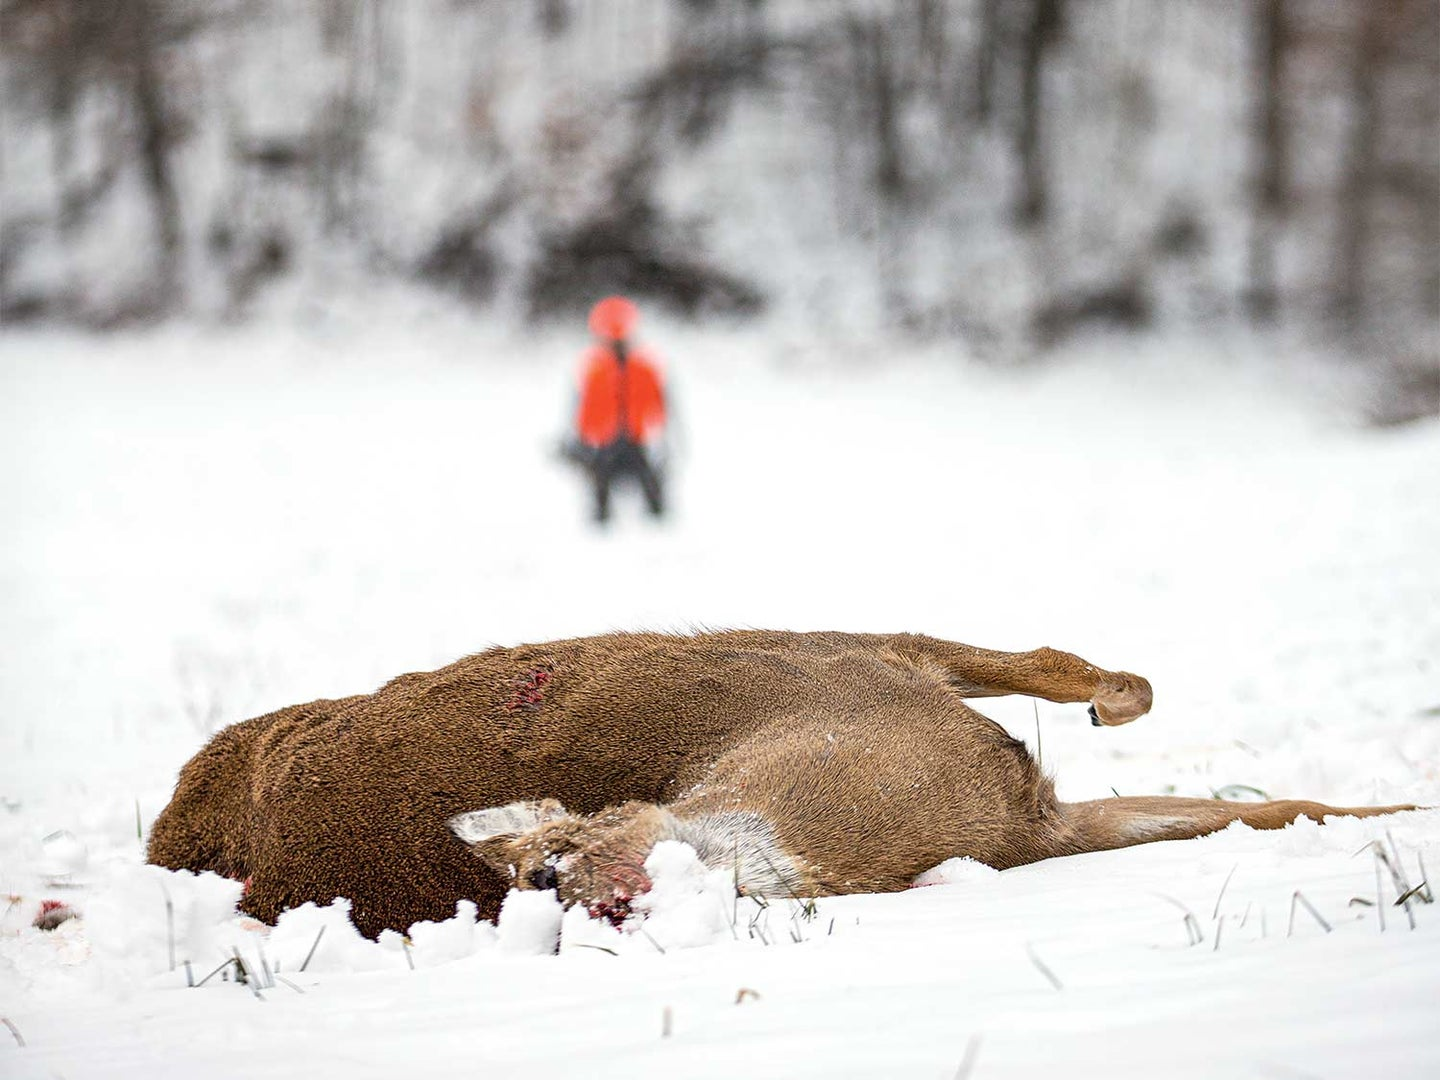 Why I Don't Take Long Shots When Deer Hunting